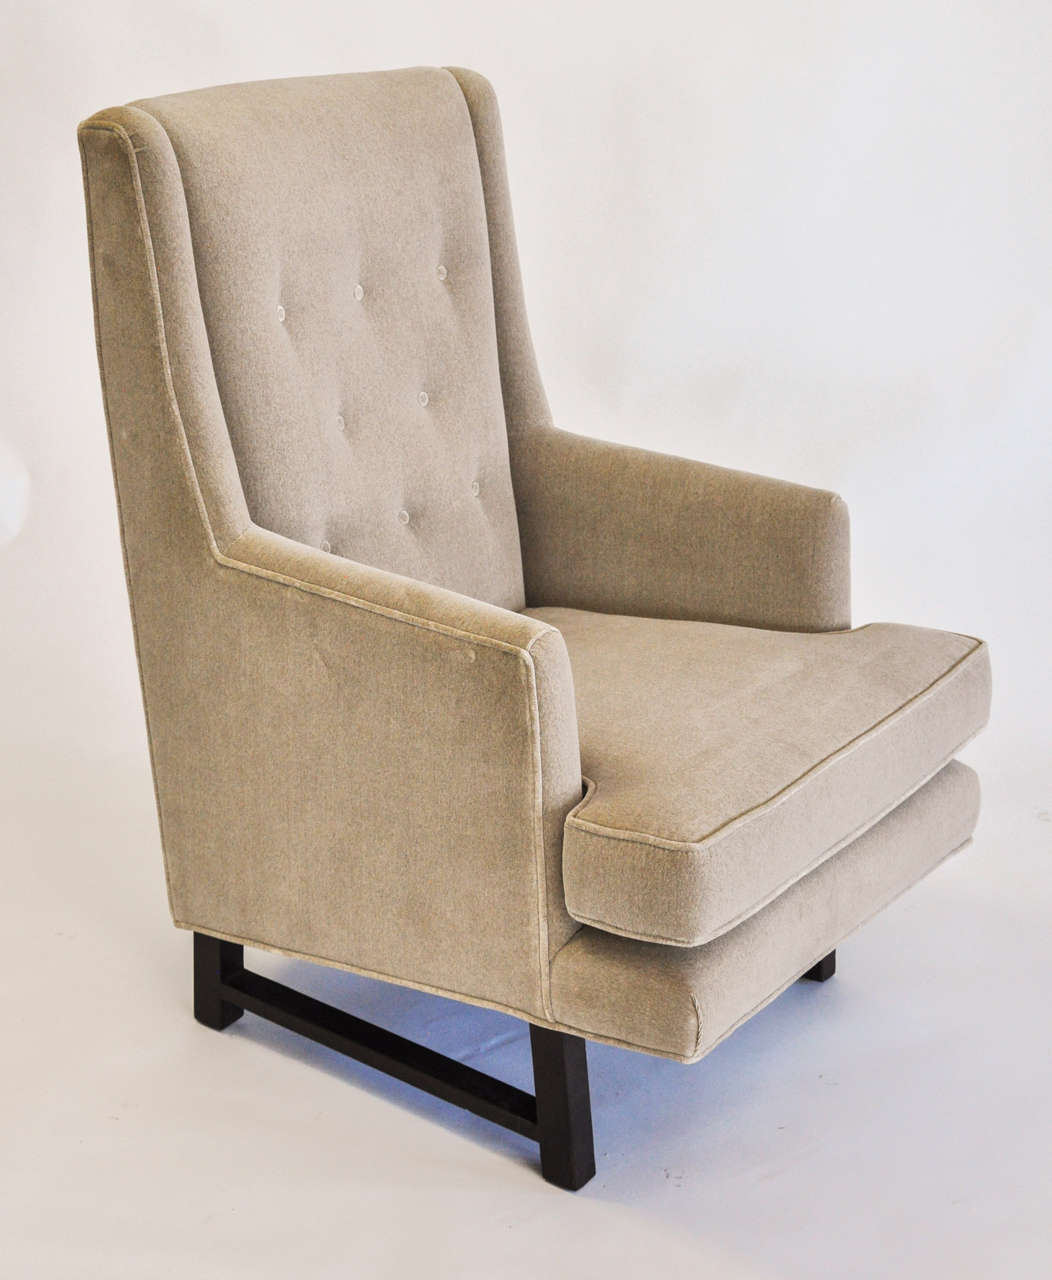 Edward Wormley for Dunbar lounge or desk chair,